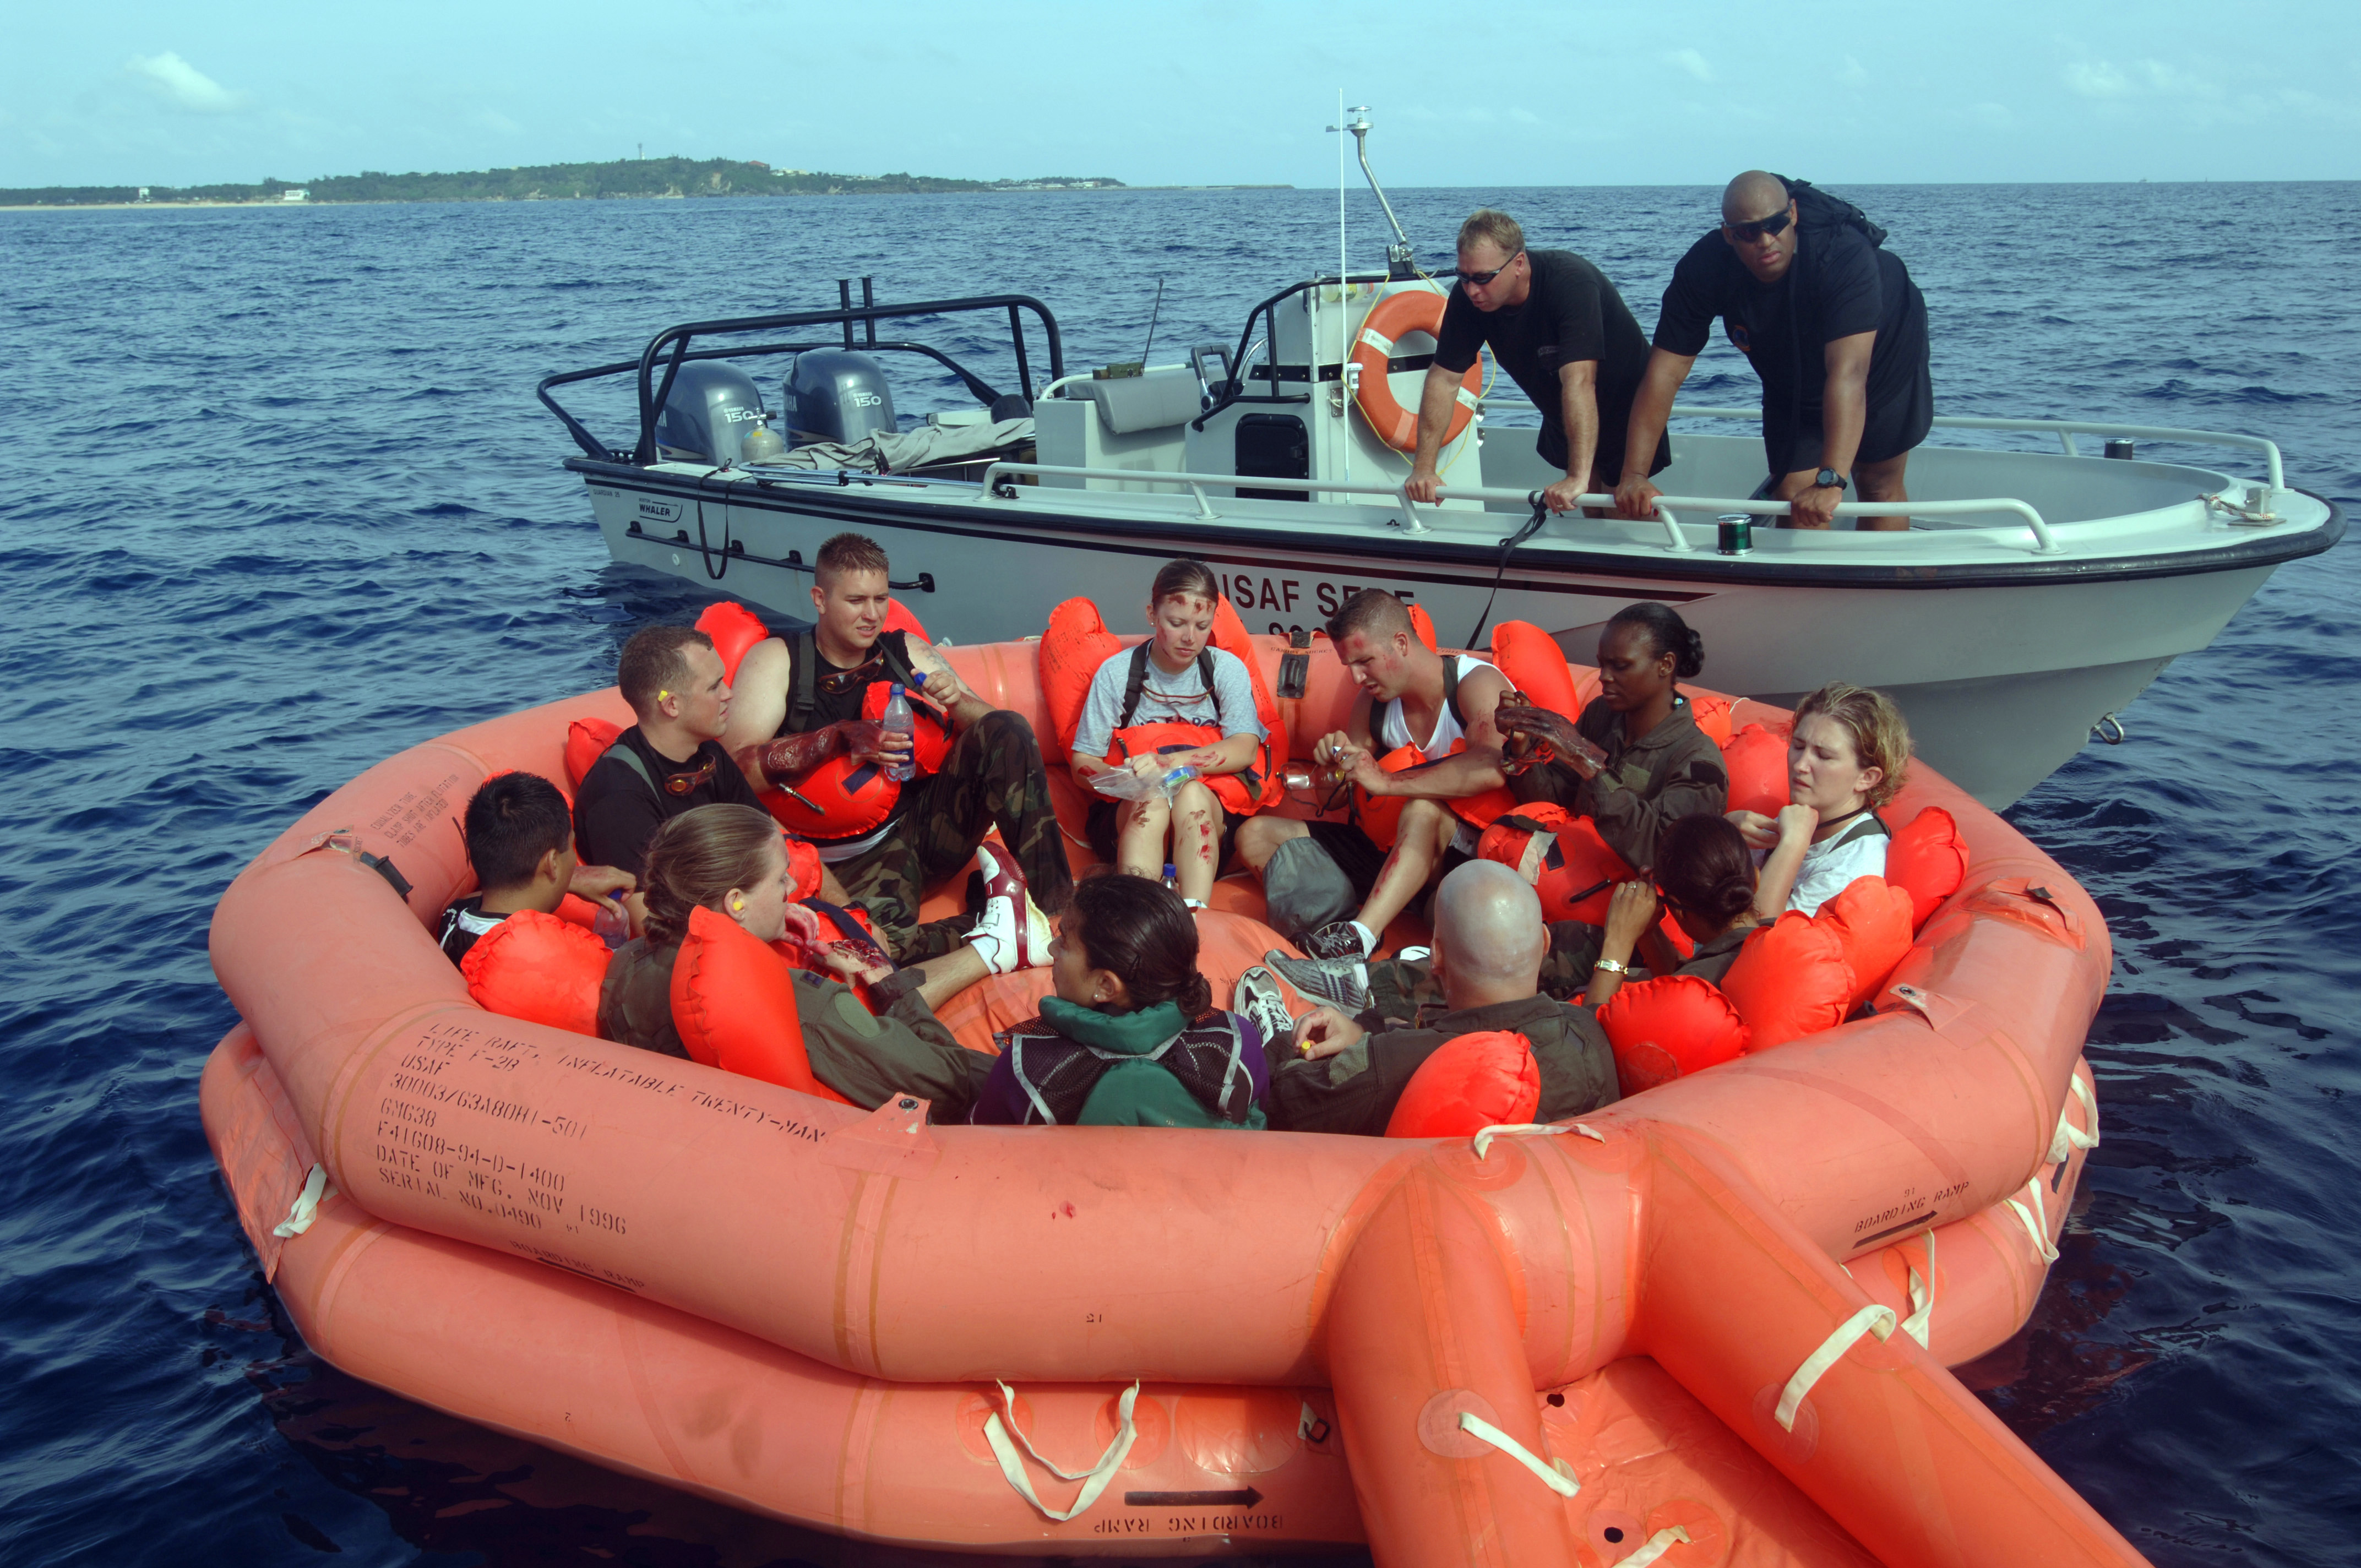 Photo of people in a life raft